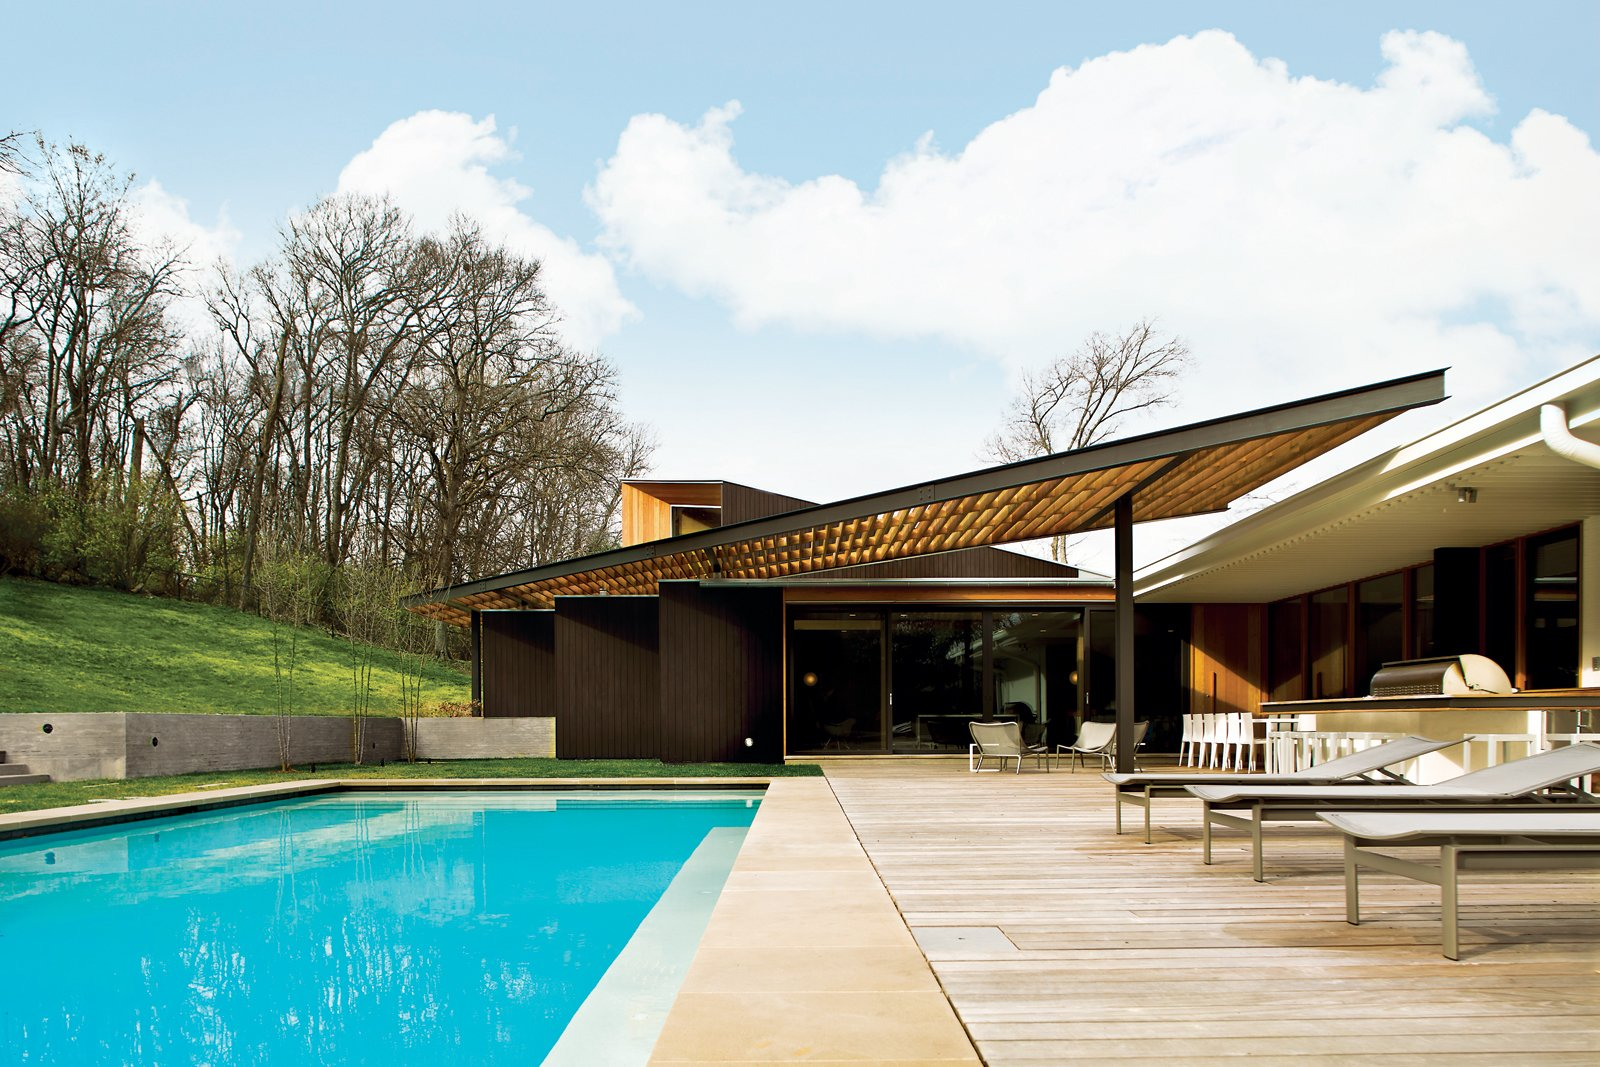 The Babat residence in Nashville is blessed with a big backyard; however, the blistering Tennessee sun once made it feel more like a broiler than a place to kick back and relax. Enter architect Michael Goorevich—then on staff at Manuel Zeitlin Architects—who devised a wood-and-steel trellis to cover part of the space. Tagged: Outdoor, Swimming Pools, Tubs, Shower, Large Patio, Porch, Deck, Wood Patio, Porch, Deck, Large Pools, Tubs, Shower, and Back Yard.  Backyard Daydream from The Trellis That Keeps It Cool